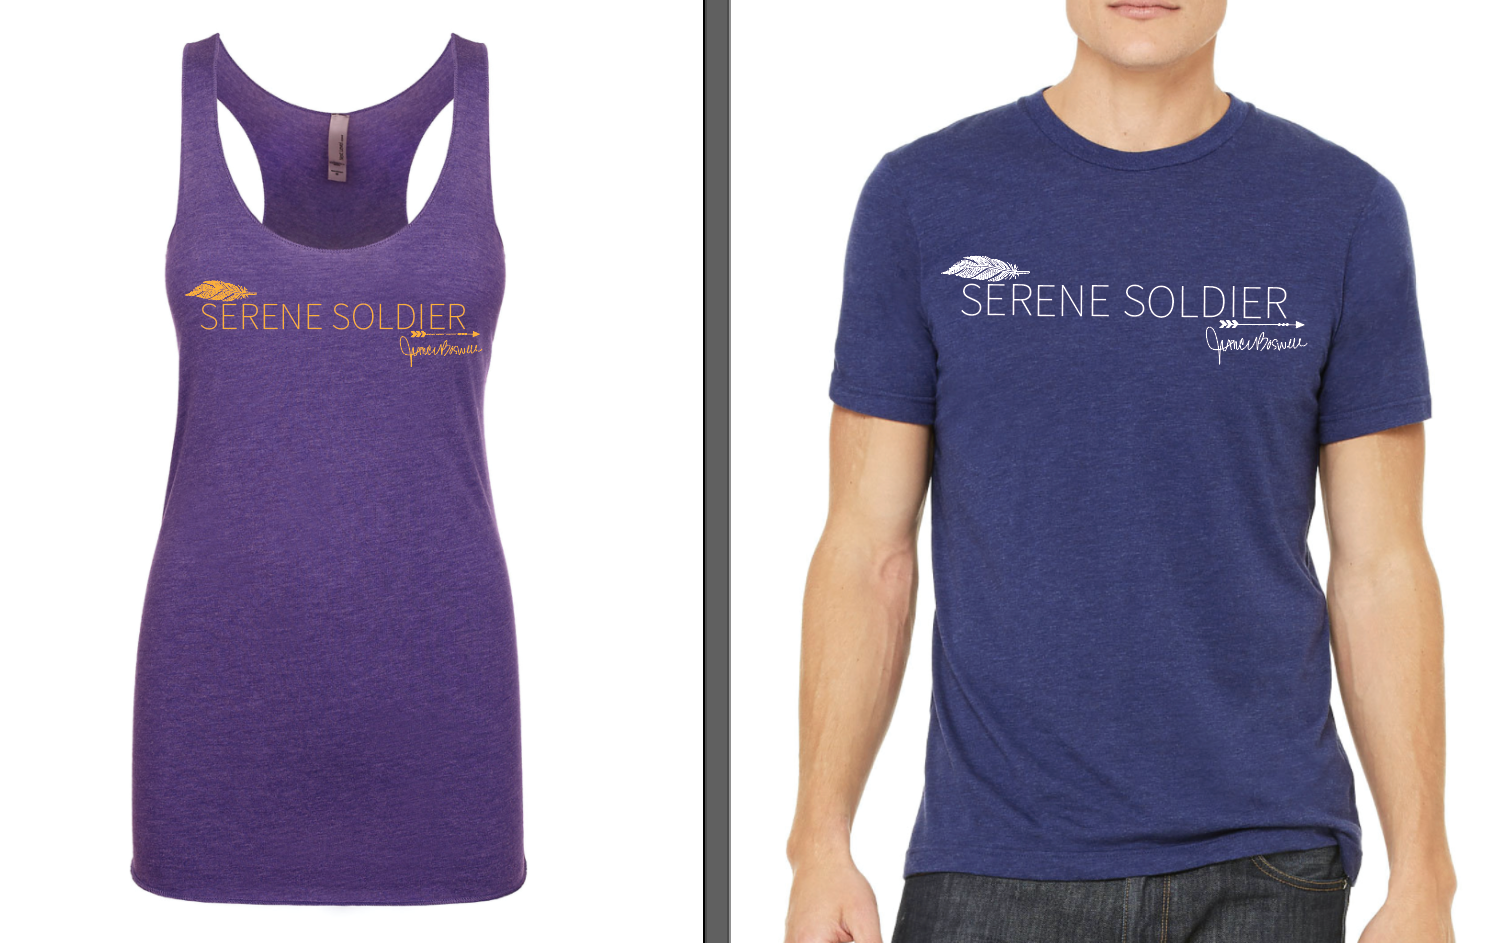 Hannah Eden Fitness - Hannah Eden Fitness has created a line of apparel in order to raise money indefinitely for the Serene Solider Foundation. CLICK HERE to get yours today!